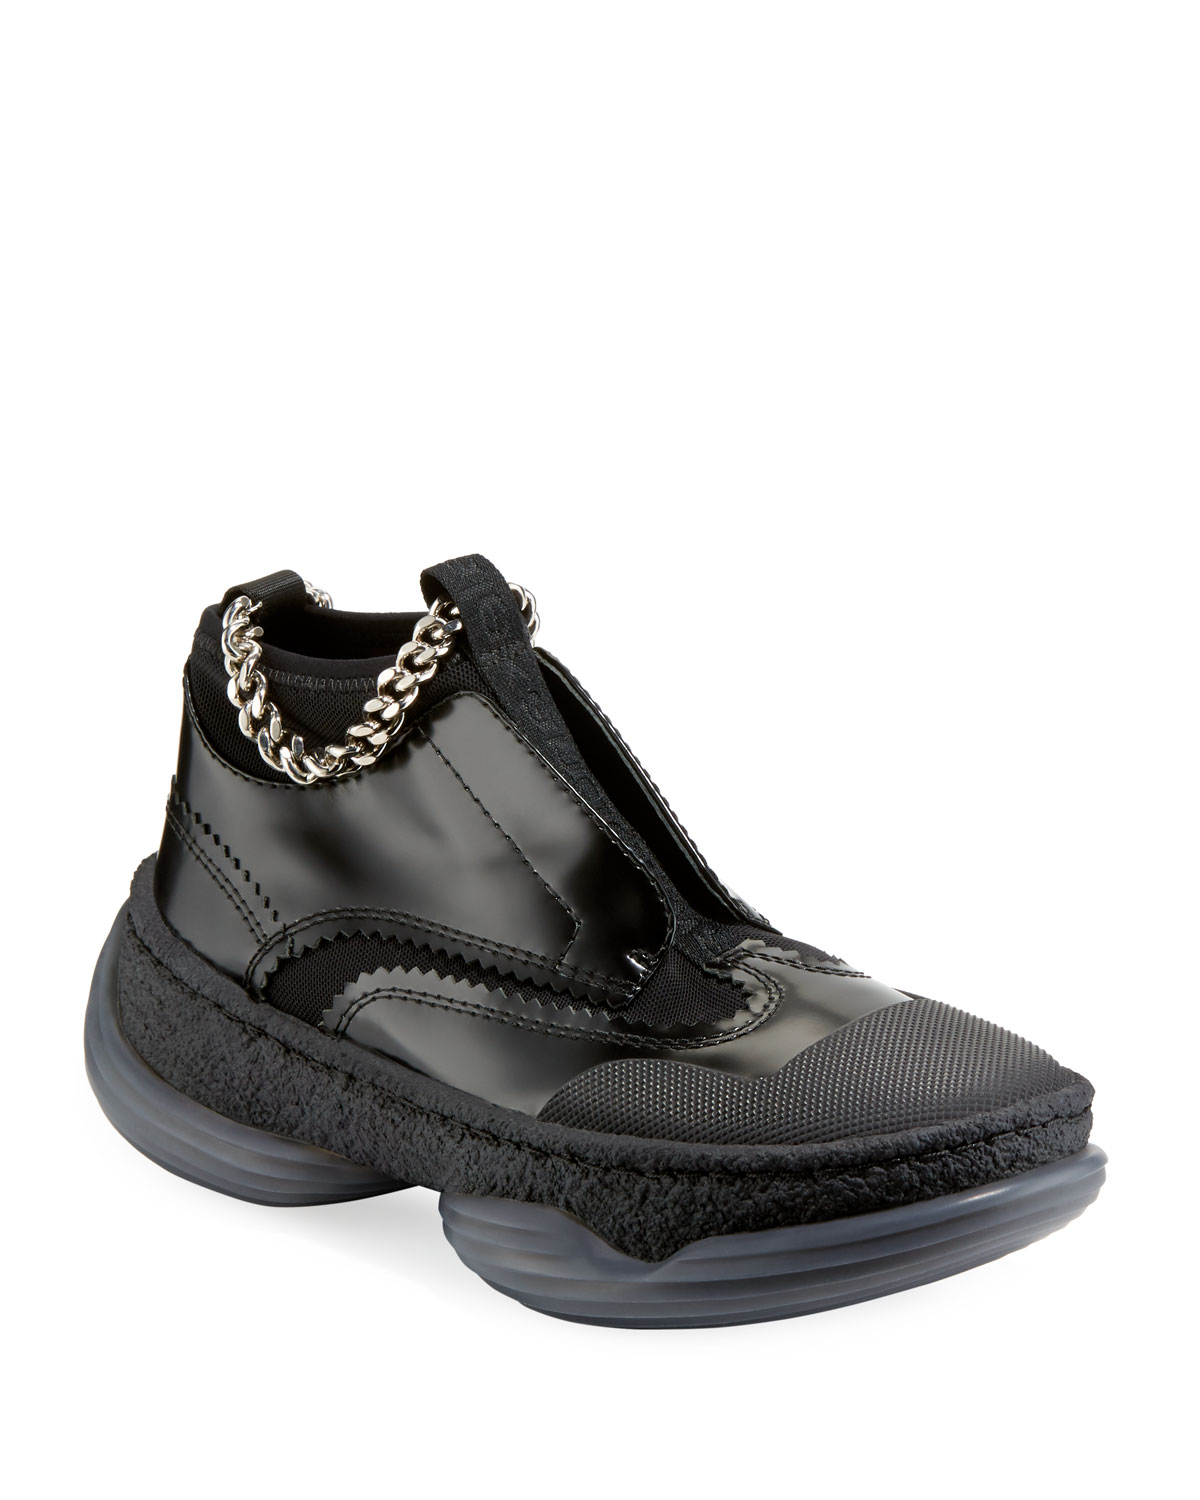 A1 Slip-On Oxford Sneakers